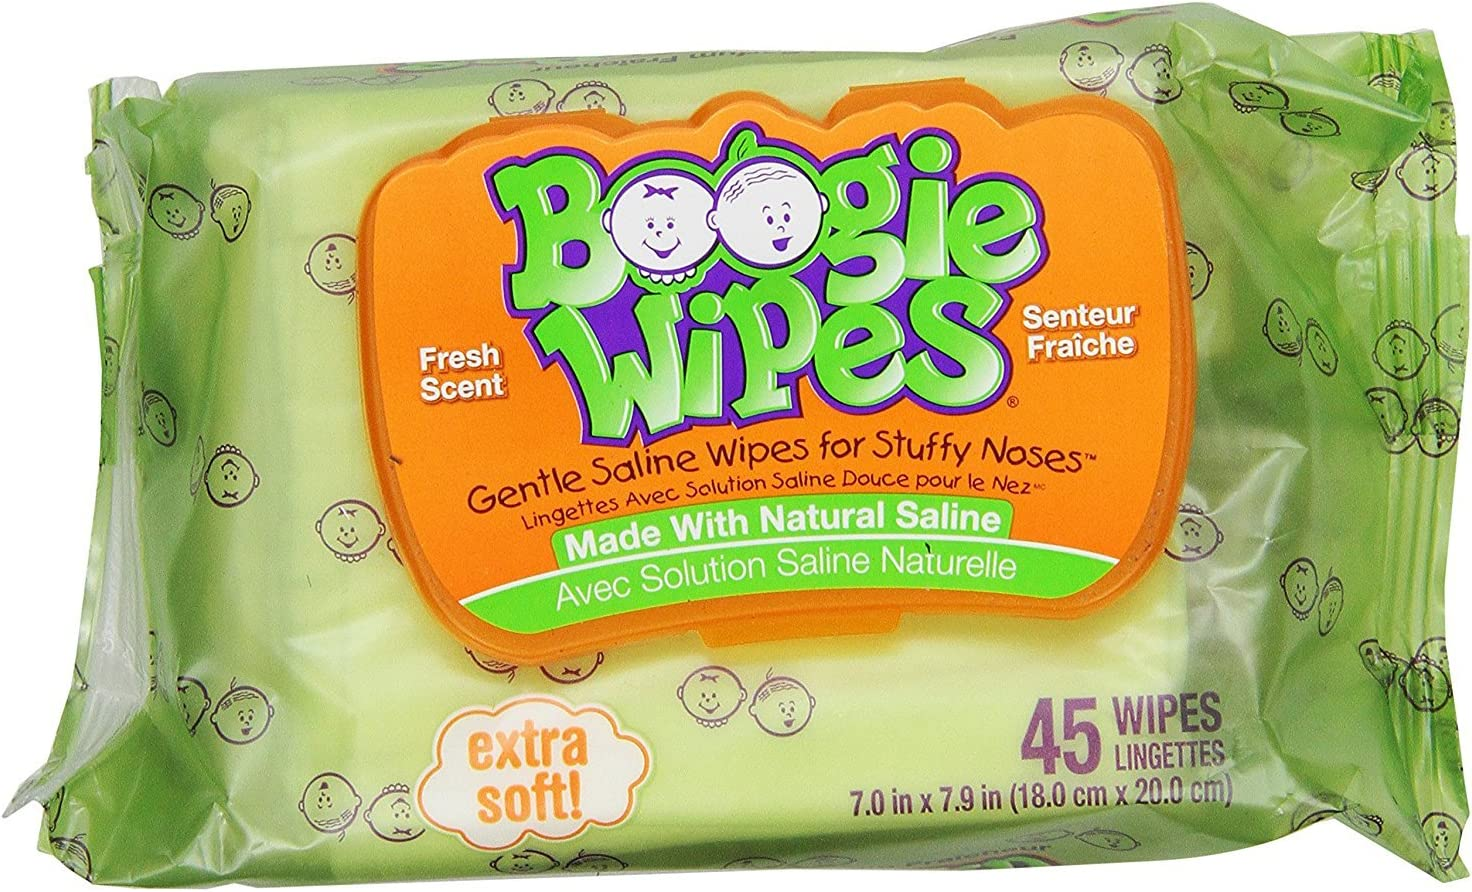 Boogie Wipes, Wet Nose Wipes for Kids and Baby, Allergy Relief, Soft Natural Saline Hand and Face Saline Tissue with Aloe, Chamomile and Vitamin E, Fresh Scent, 45 Count